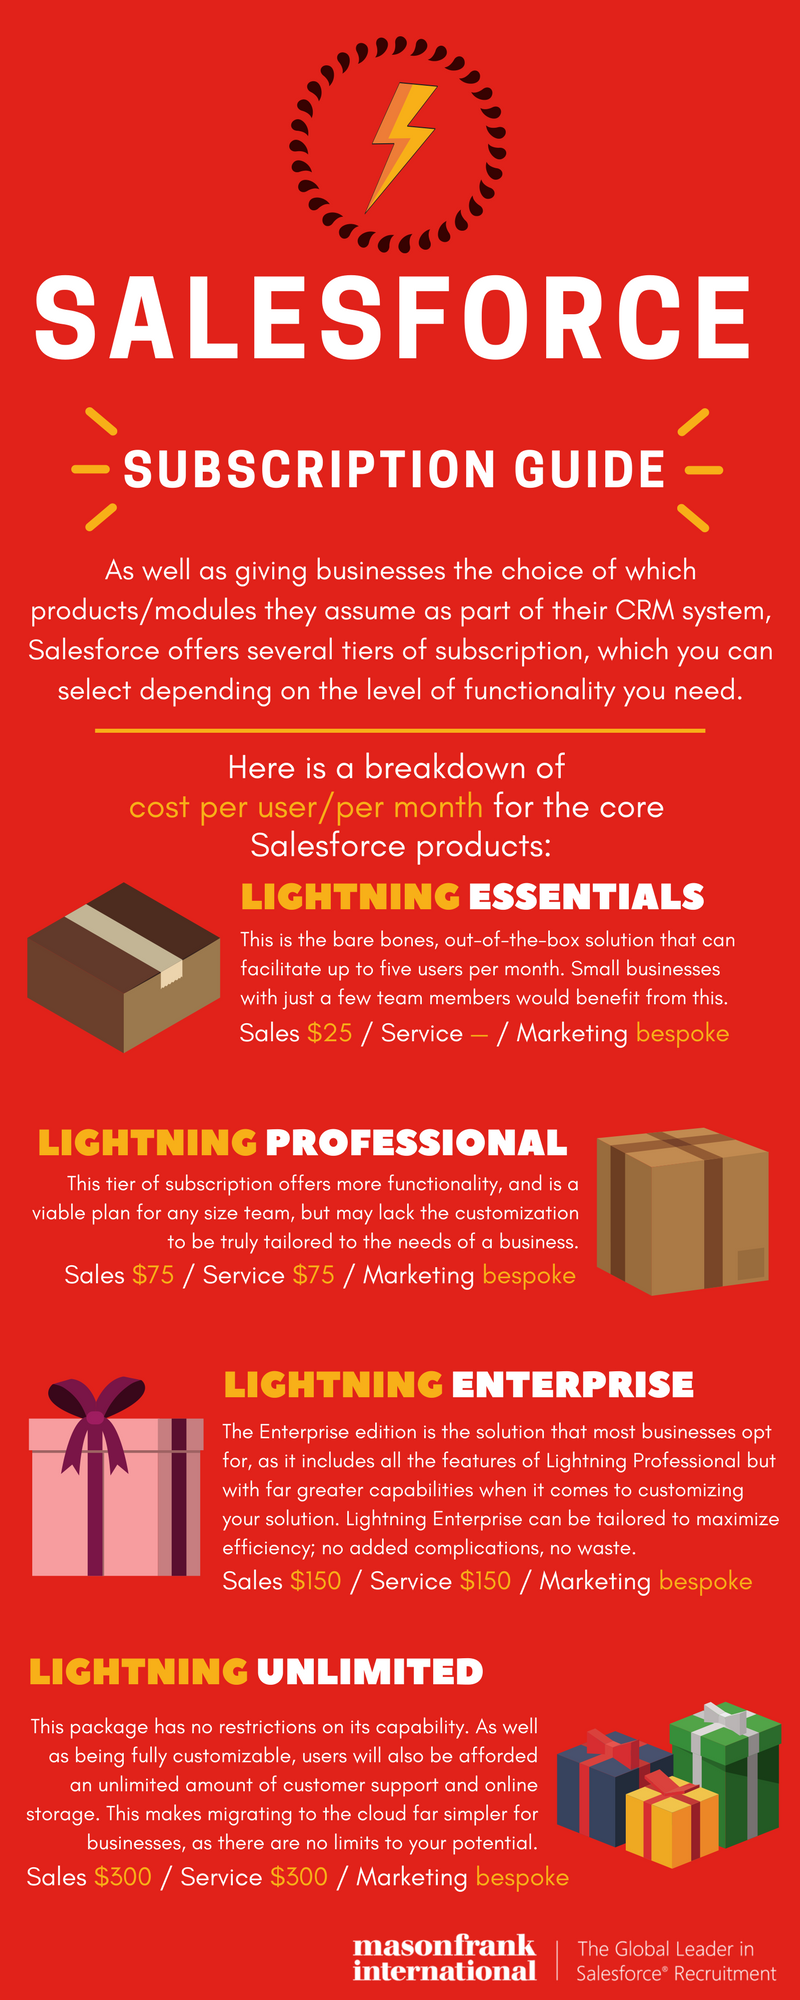 Salesforce subscription pricing guide infographic